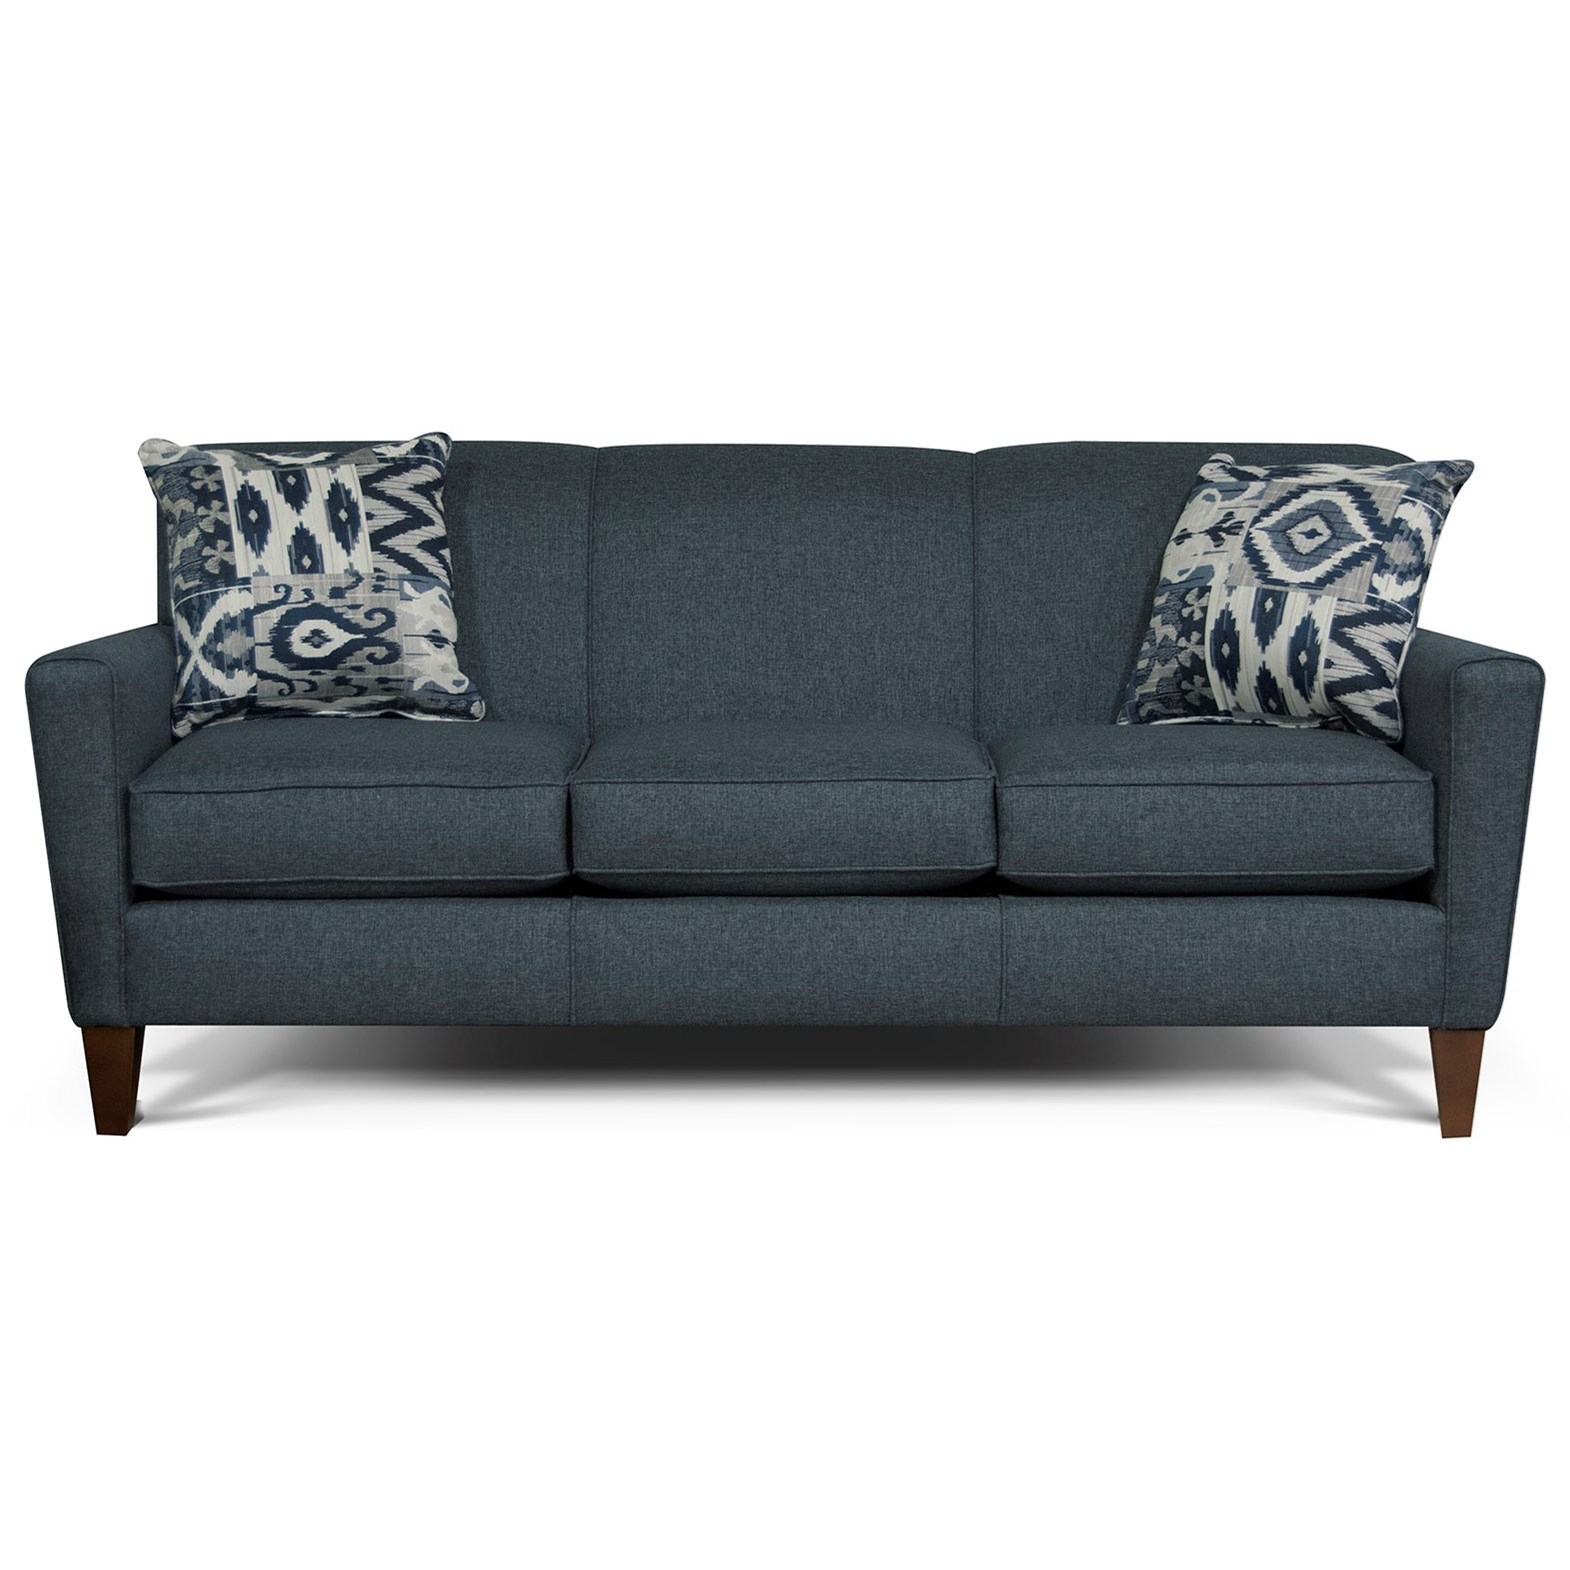 Collegedale Upholstered Sofa by England at Gill Brothers Furniture